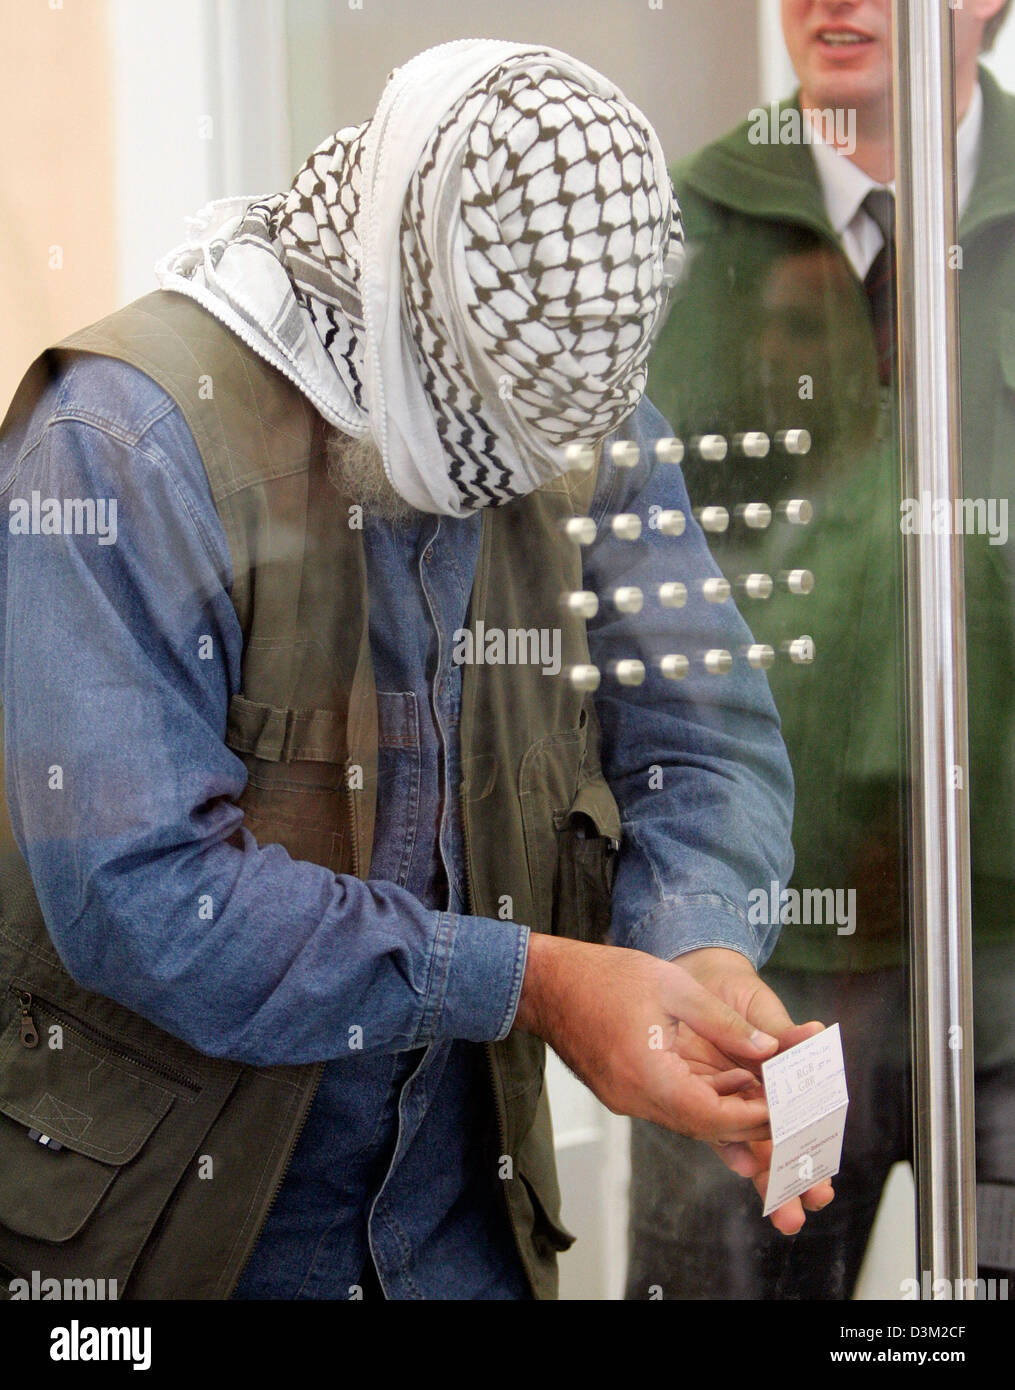 (dpa) - Defendant Mohamad Abu Dhees presses a paper note on the glass wall during the judge's decision at the - Stock Image